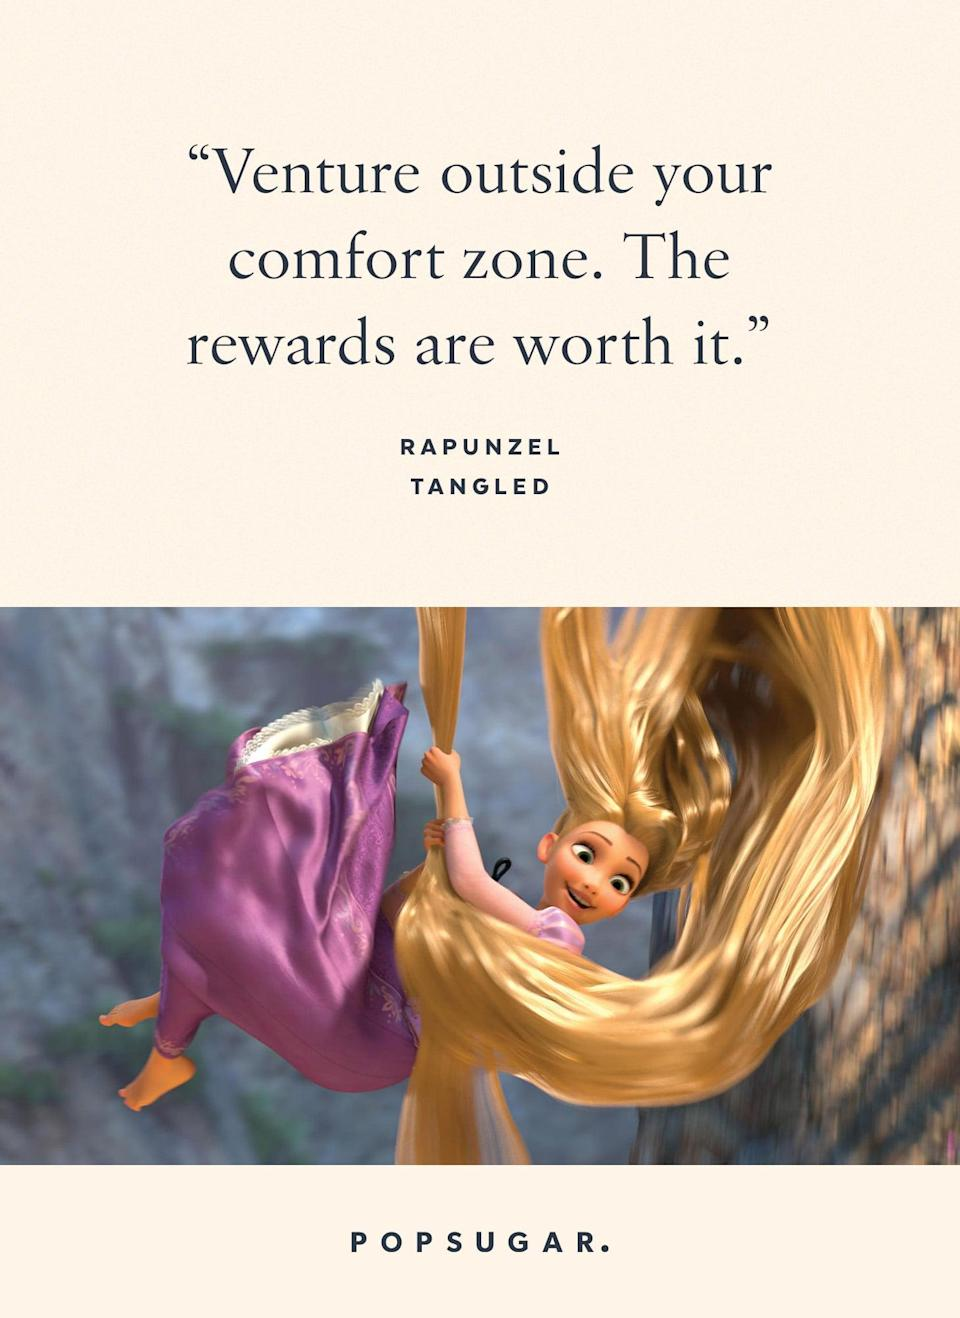 "<p>""Venture outside your comfort zone. The rewards are worth it."" - Rapunzel, <b>Tangled</b></p>"